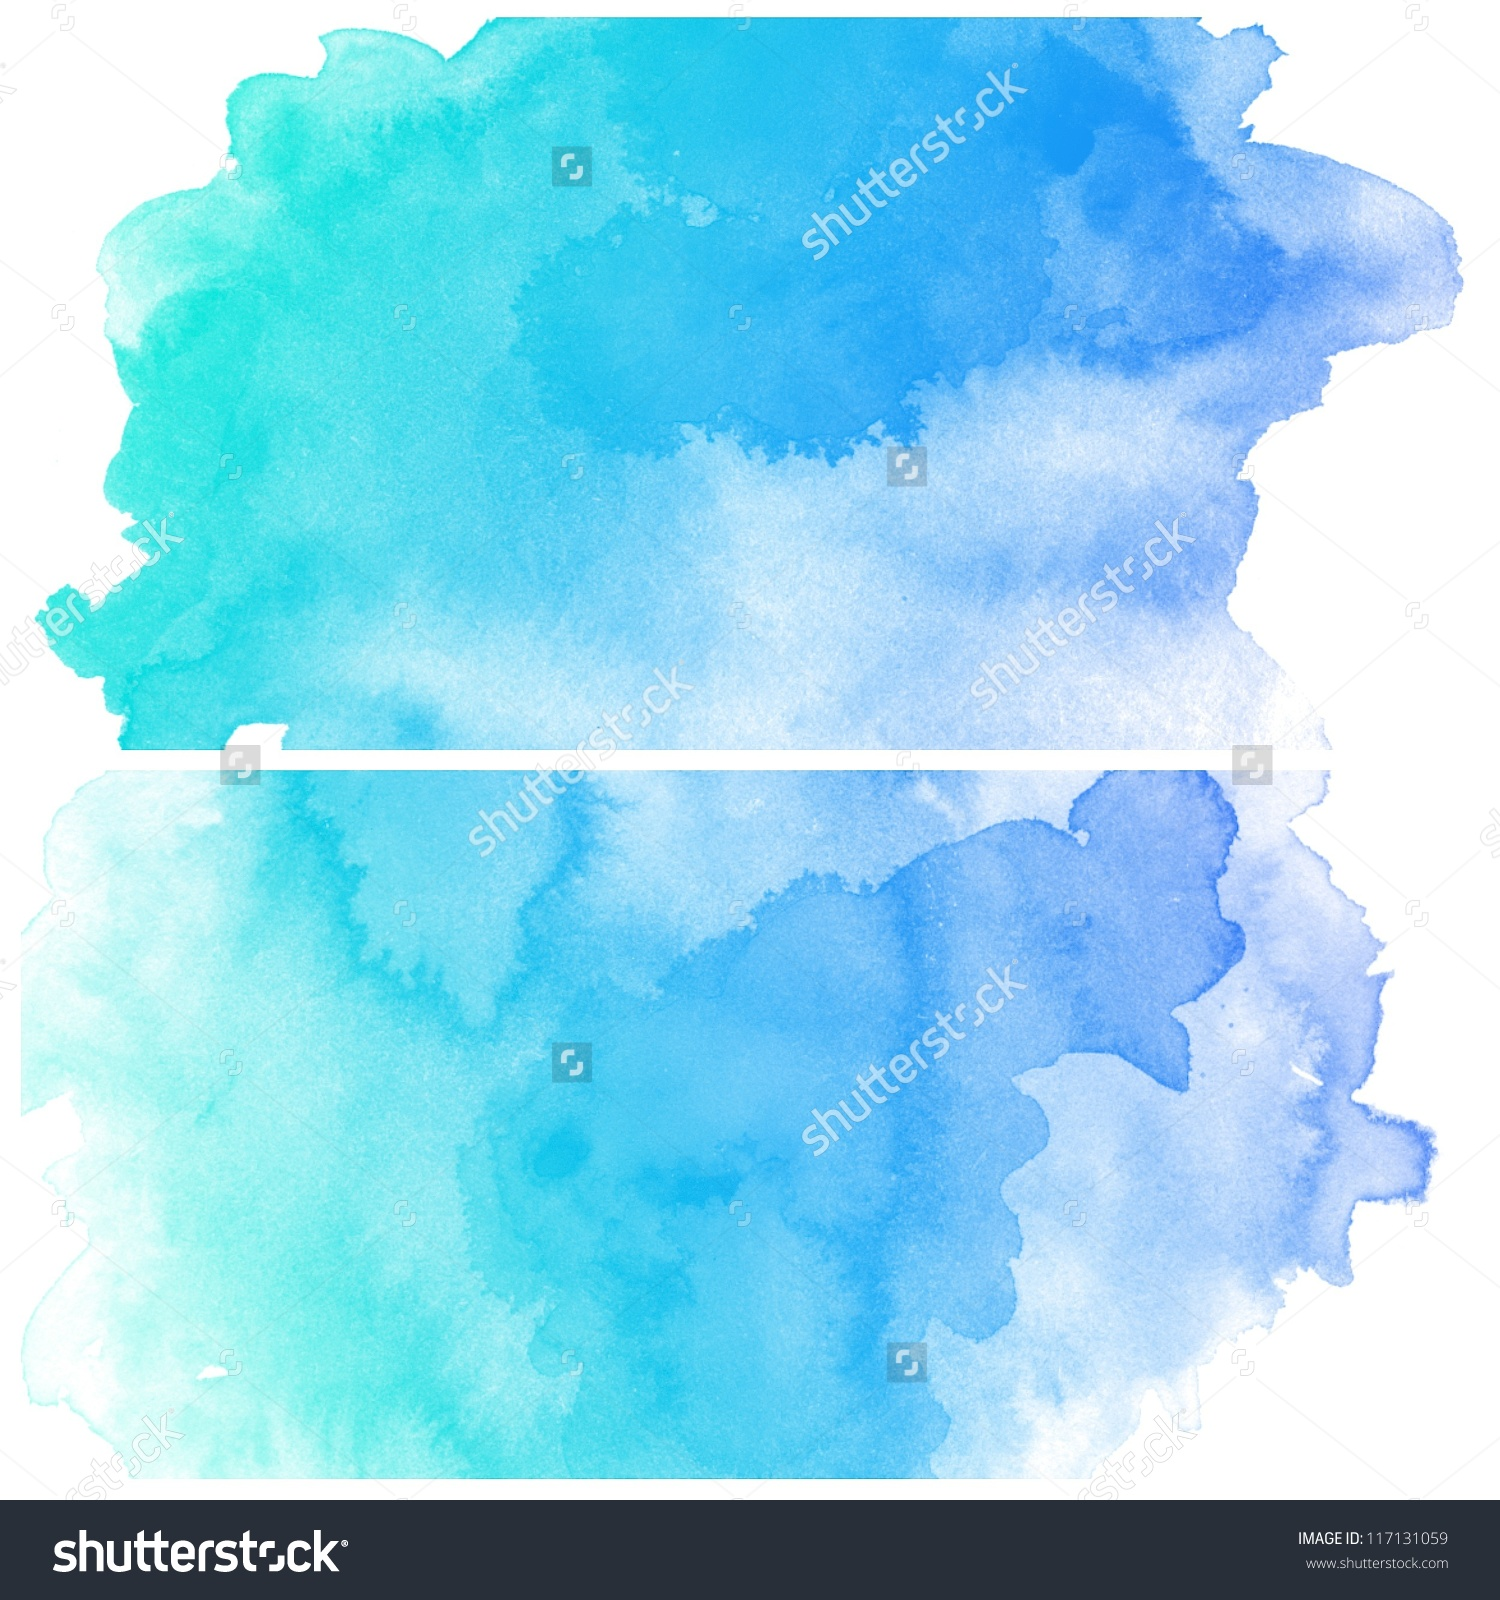 Pastel blue water clipart image royalty free stock Blue water clipart - ClipartNinja image royalty free stock